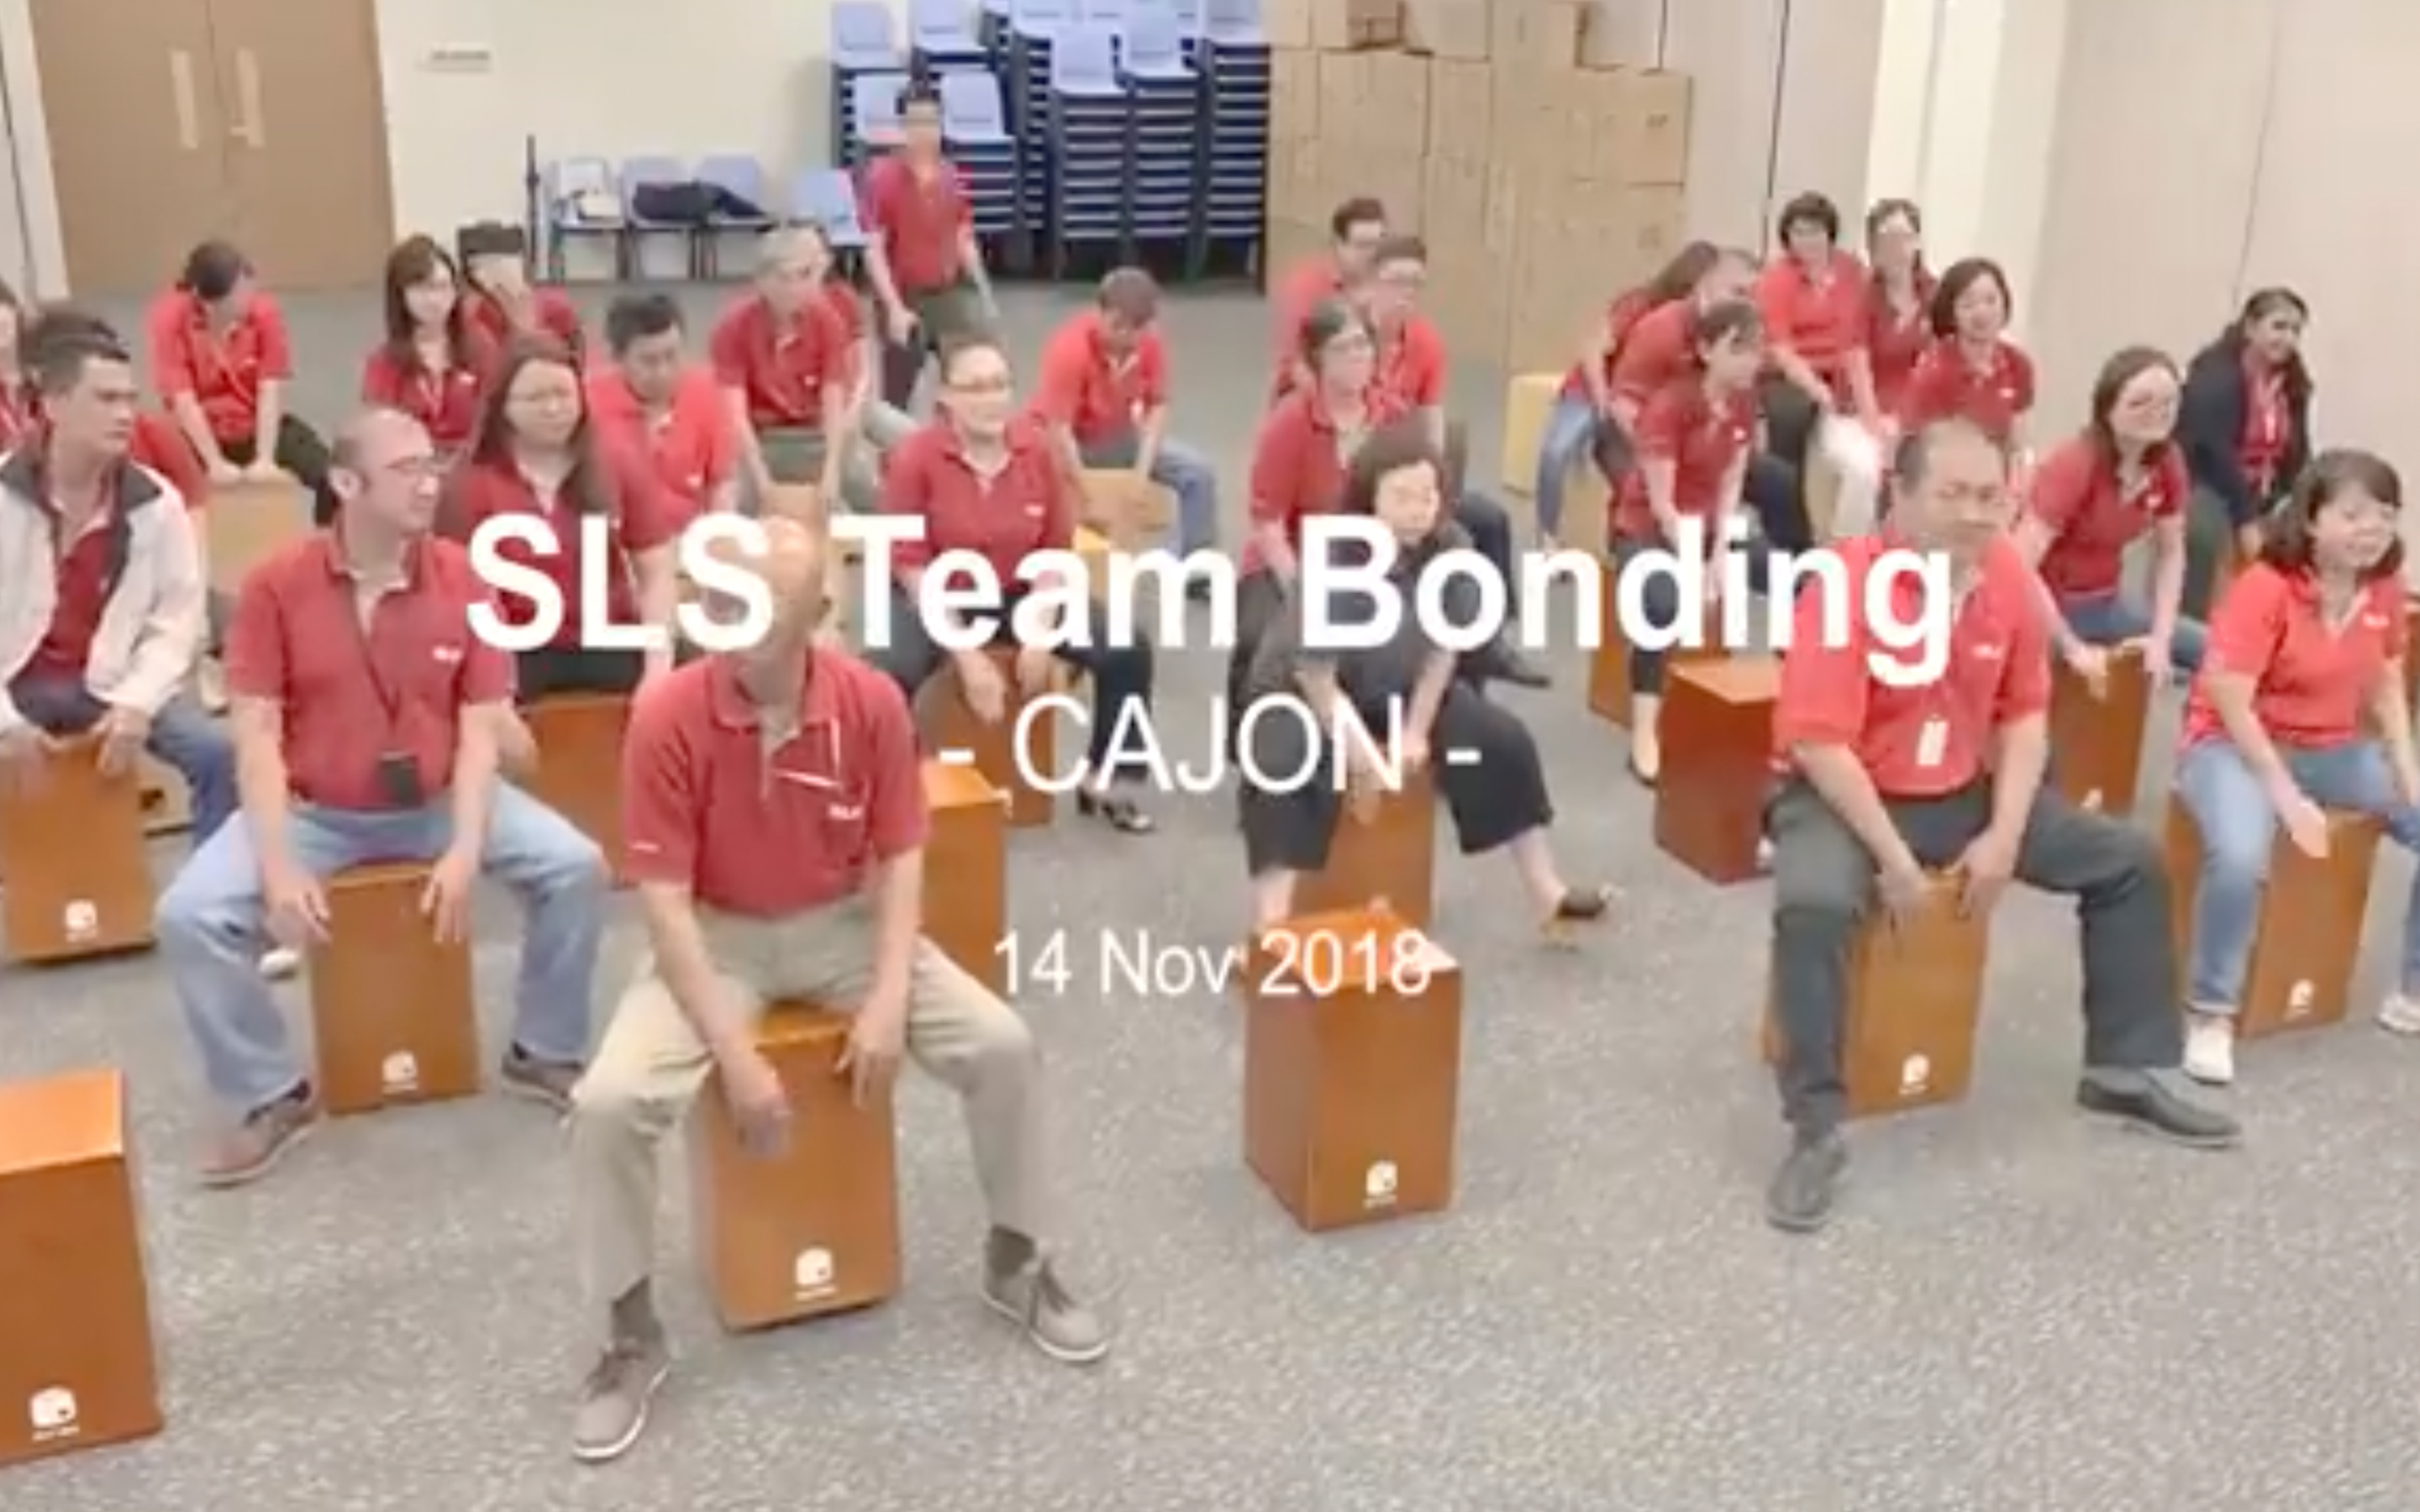 SLS Team Bonding 'Cajon Session' (14/11/2018)